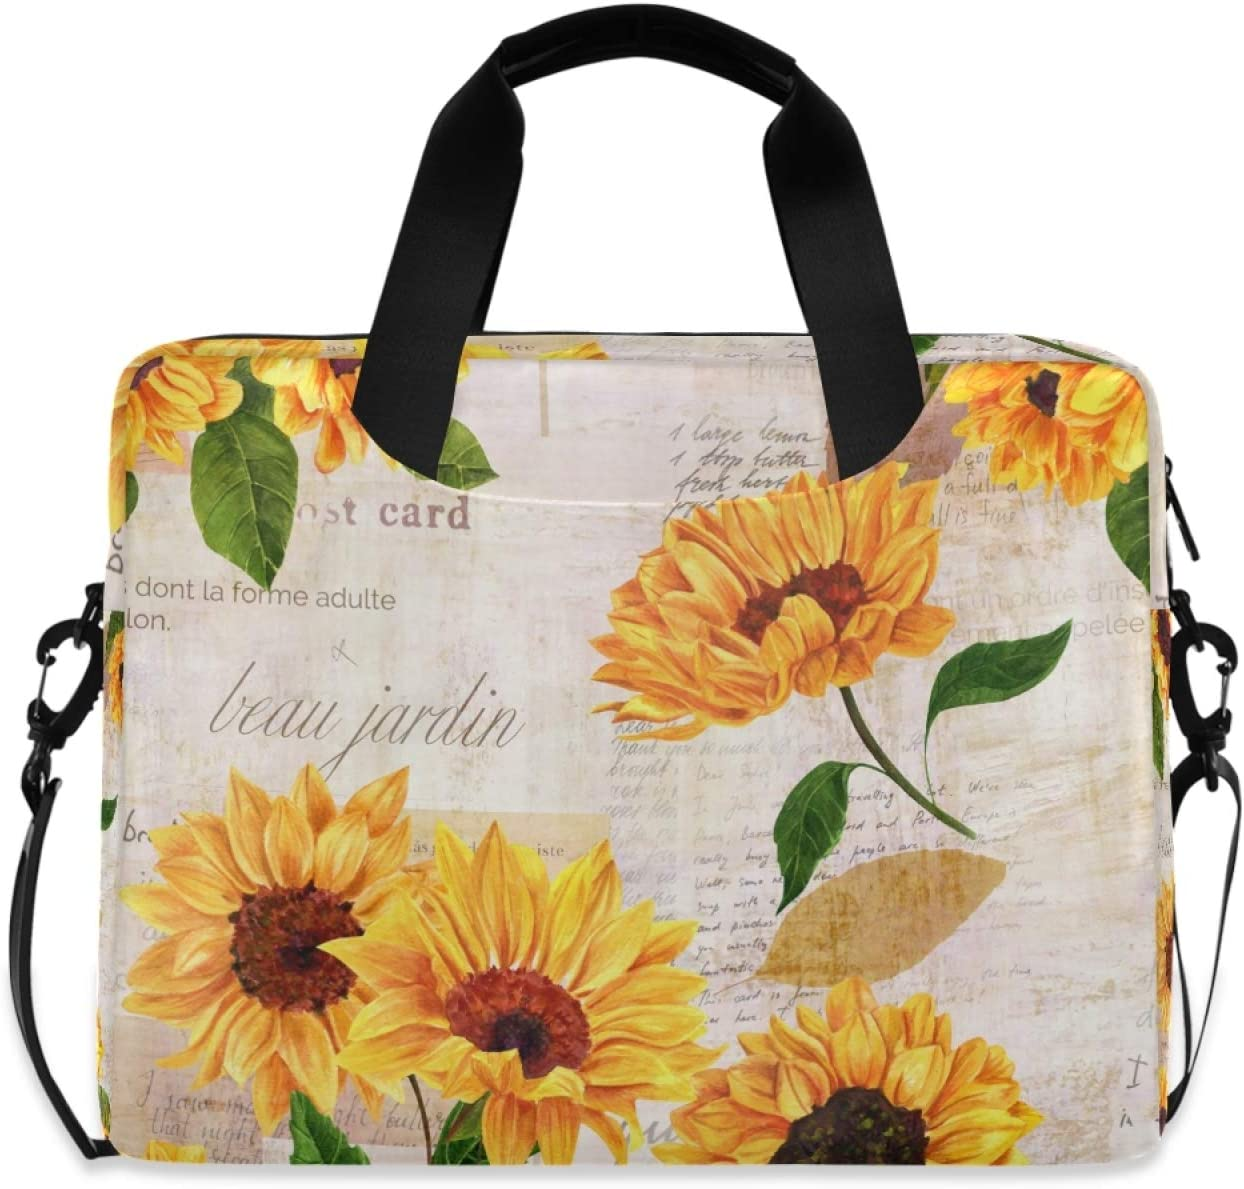 Ombra Daily bargain sale Laptop Shoulder Bag Special Campaign Sleeve Sunflower Portable Retro